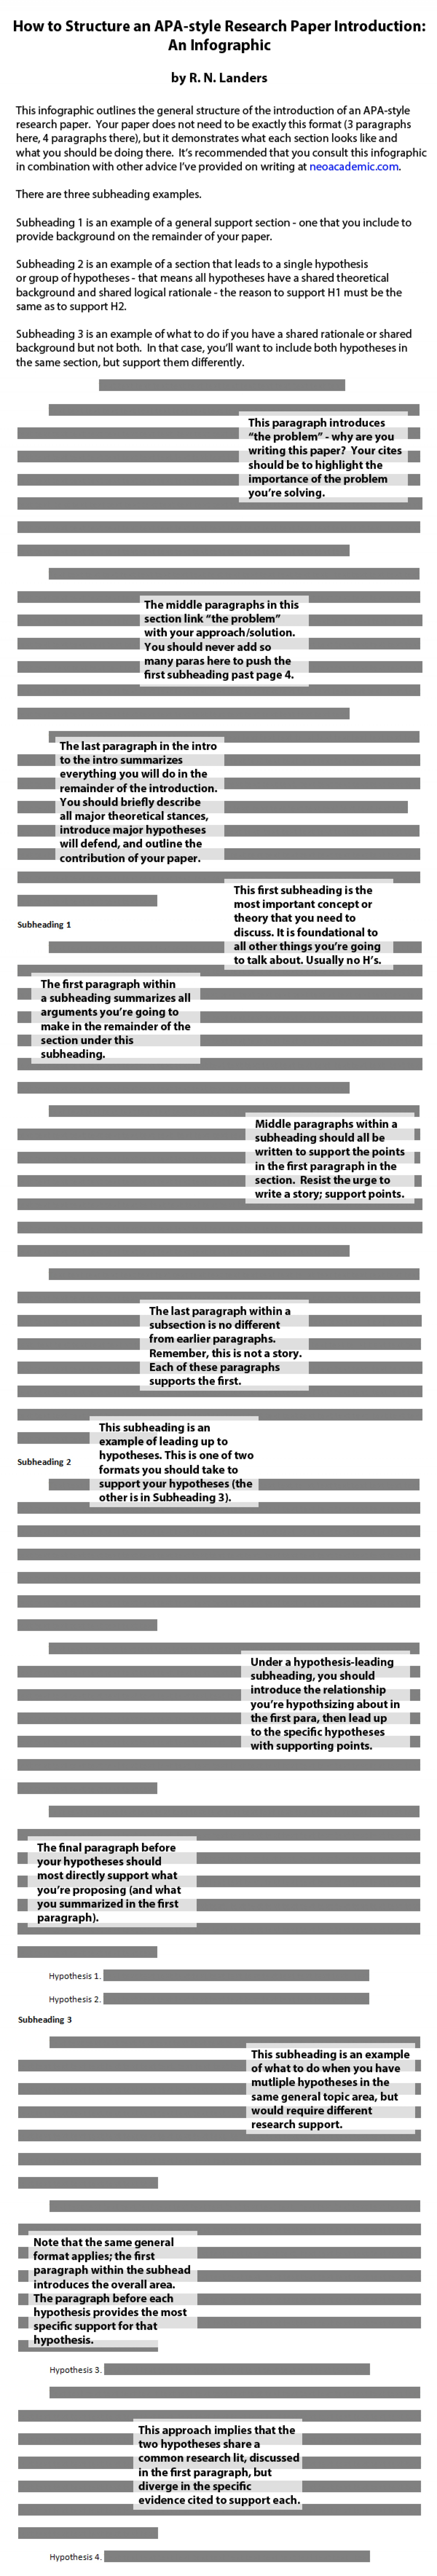 007 Intro Infographic2 Research Paper Writingn Introduction To Top Writing An A Steps In 1920